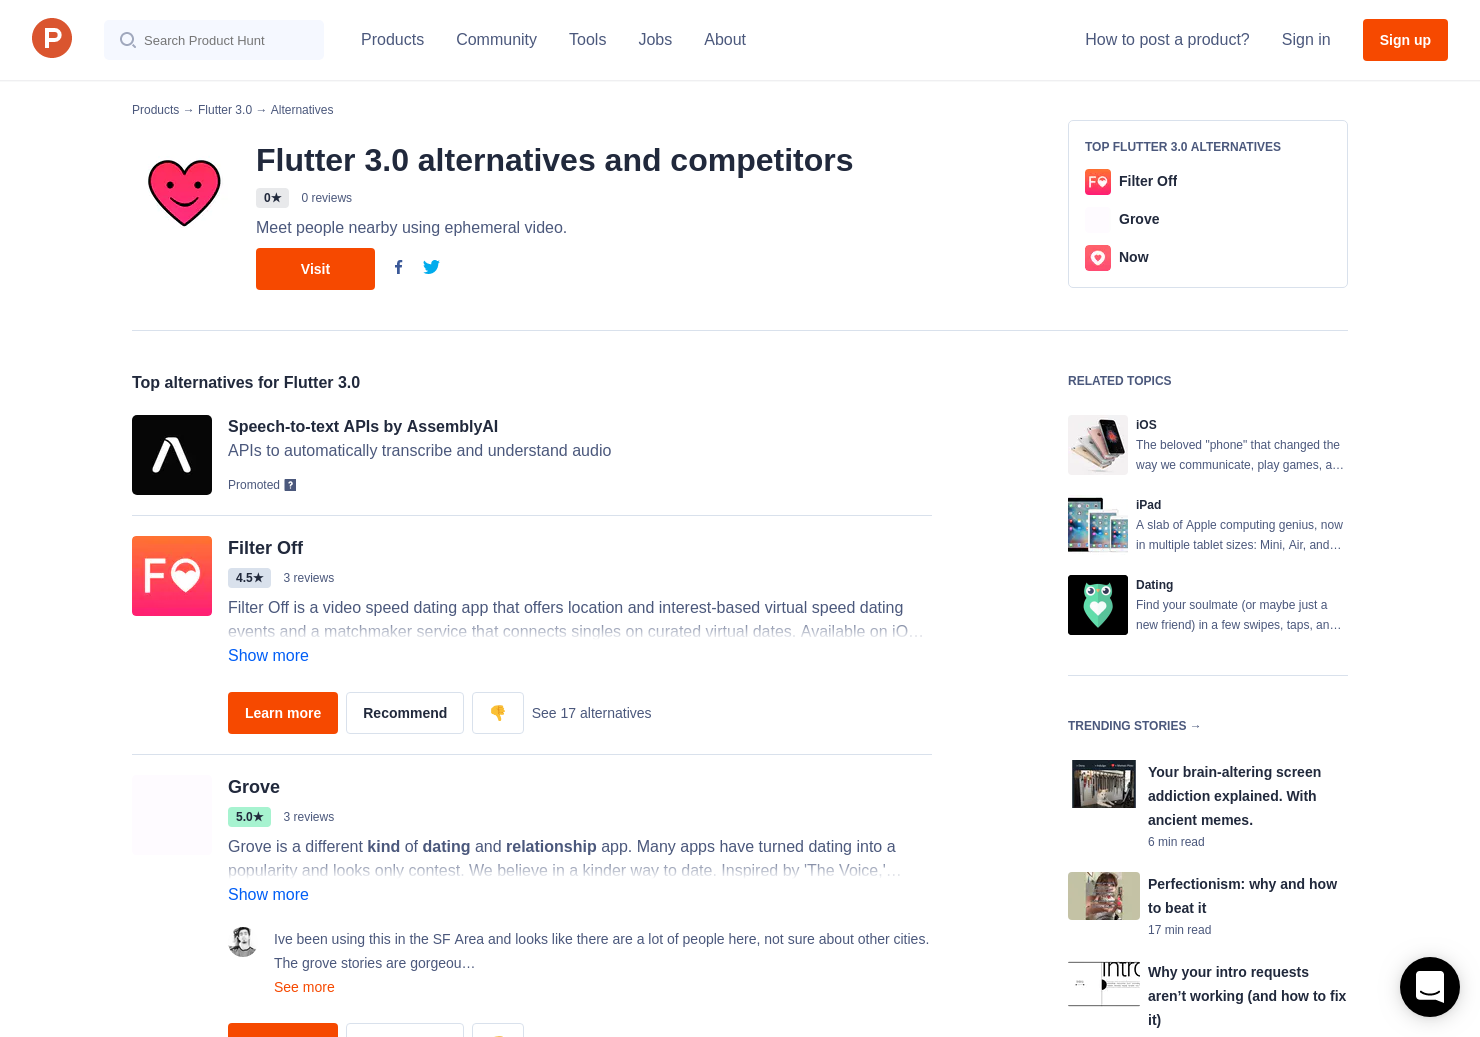 37 Alternatives to Flutter 3 0 for iPhone, iPad | Product Hunt